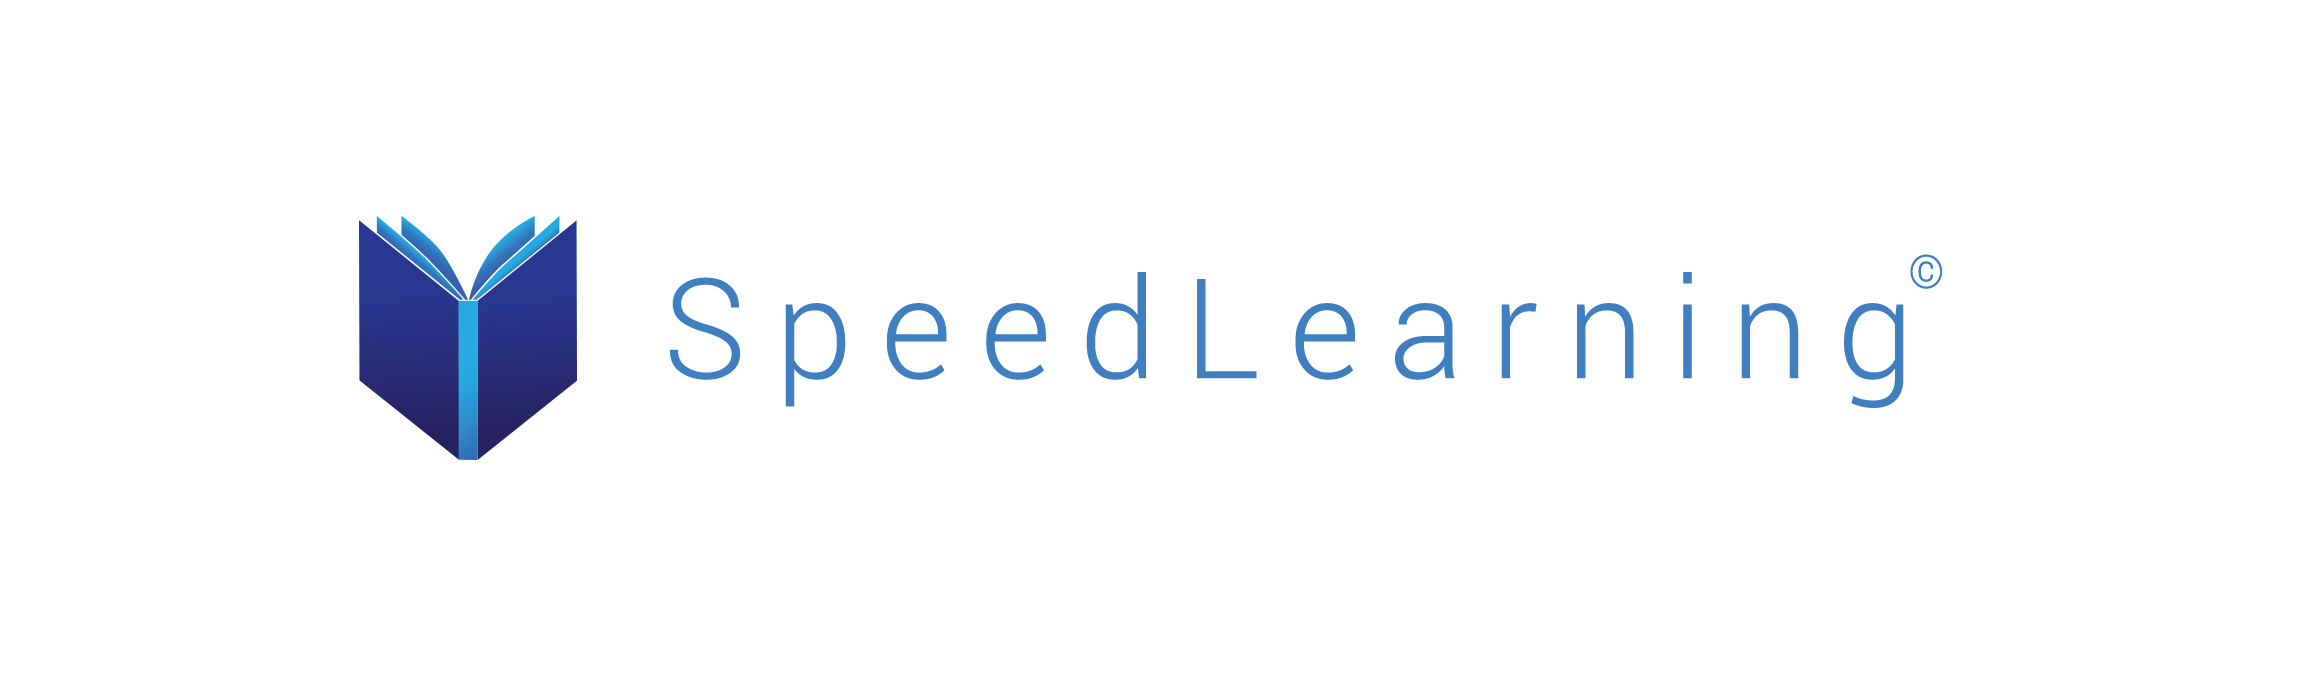 speed_learning